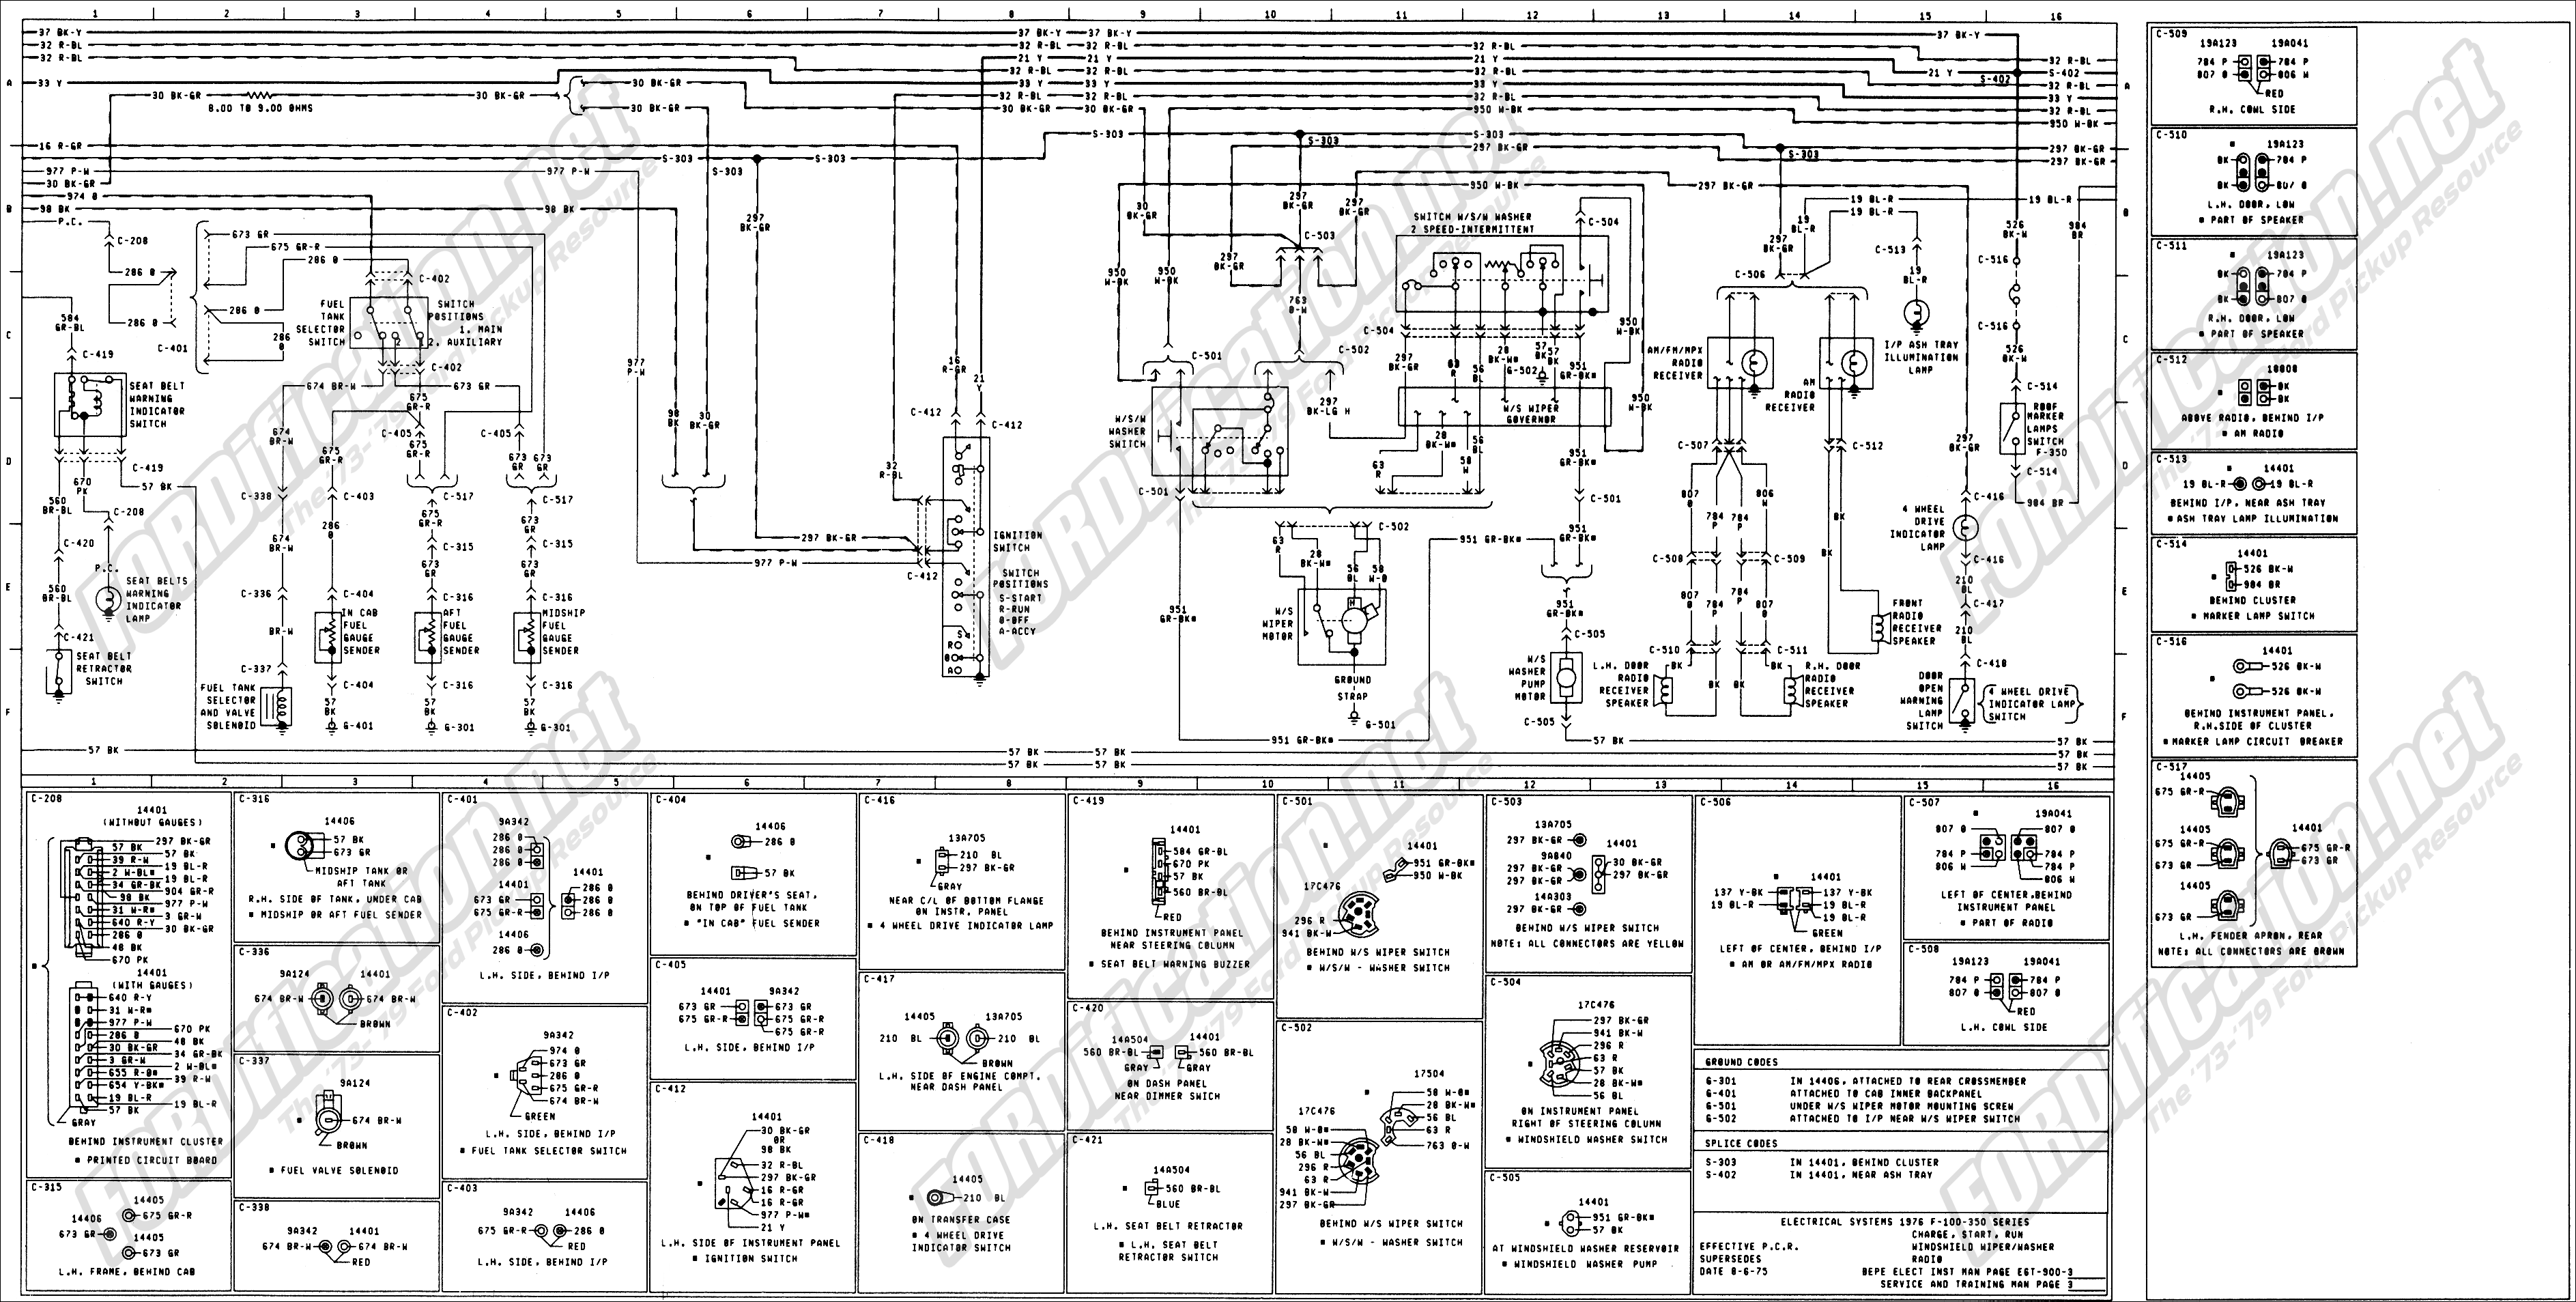 2002 F350 Wiring Schematic All Diagram 2001 Honda Civic Window Ford Diagrams Truck Schematics Net 1991 F 350